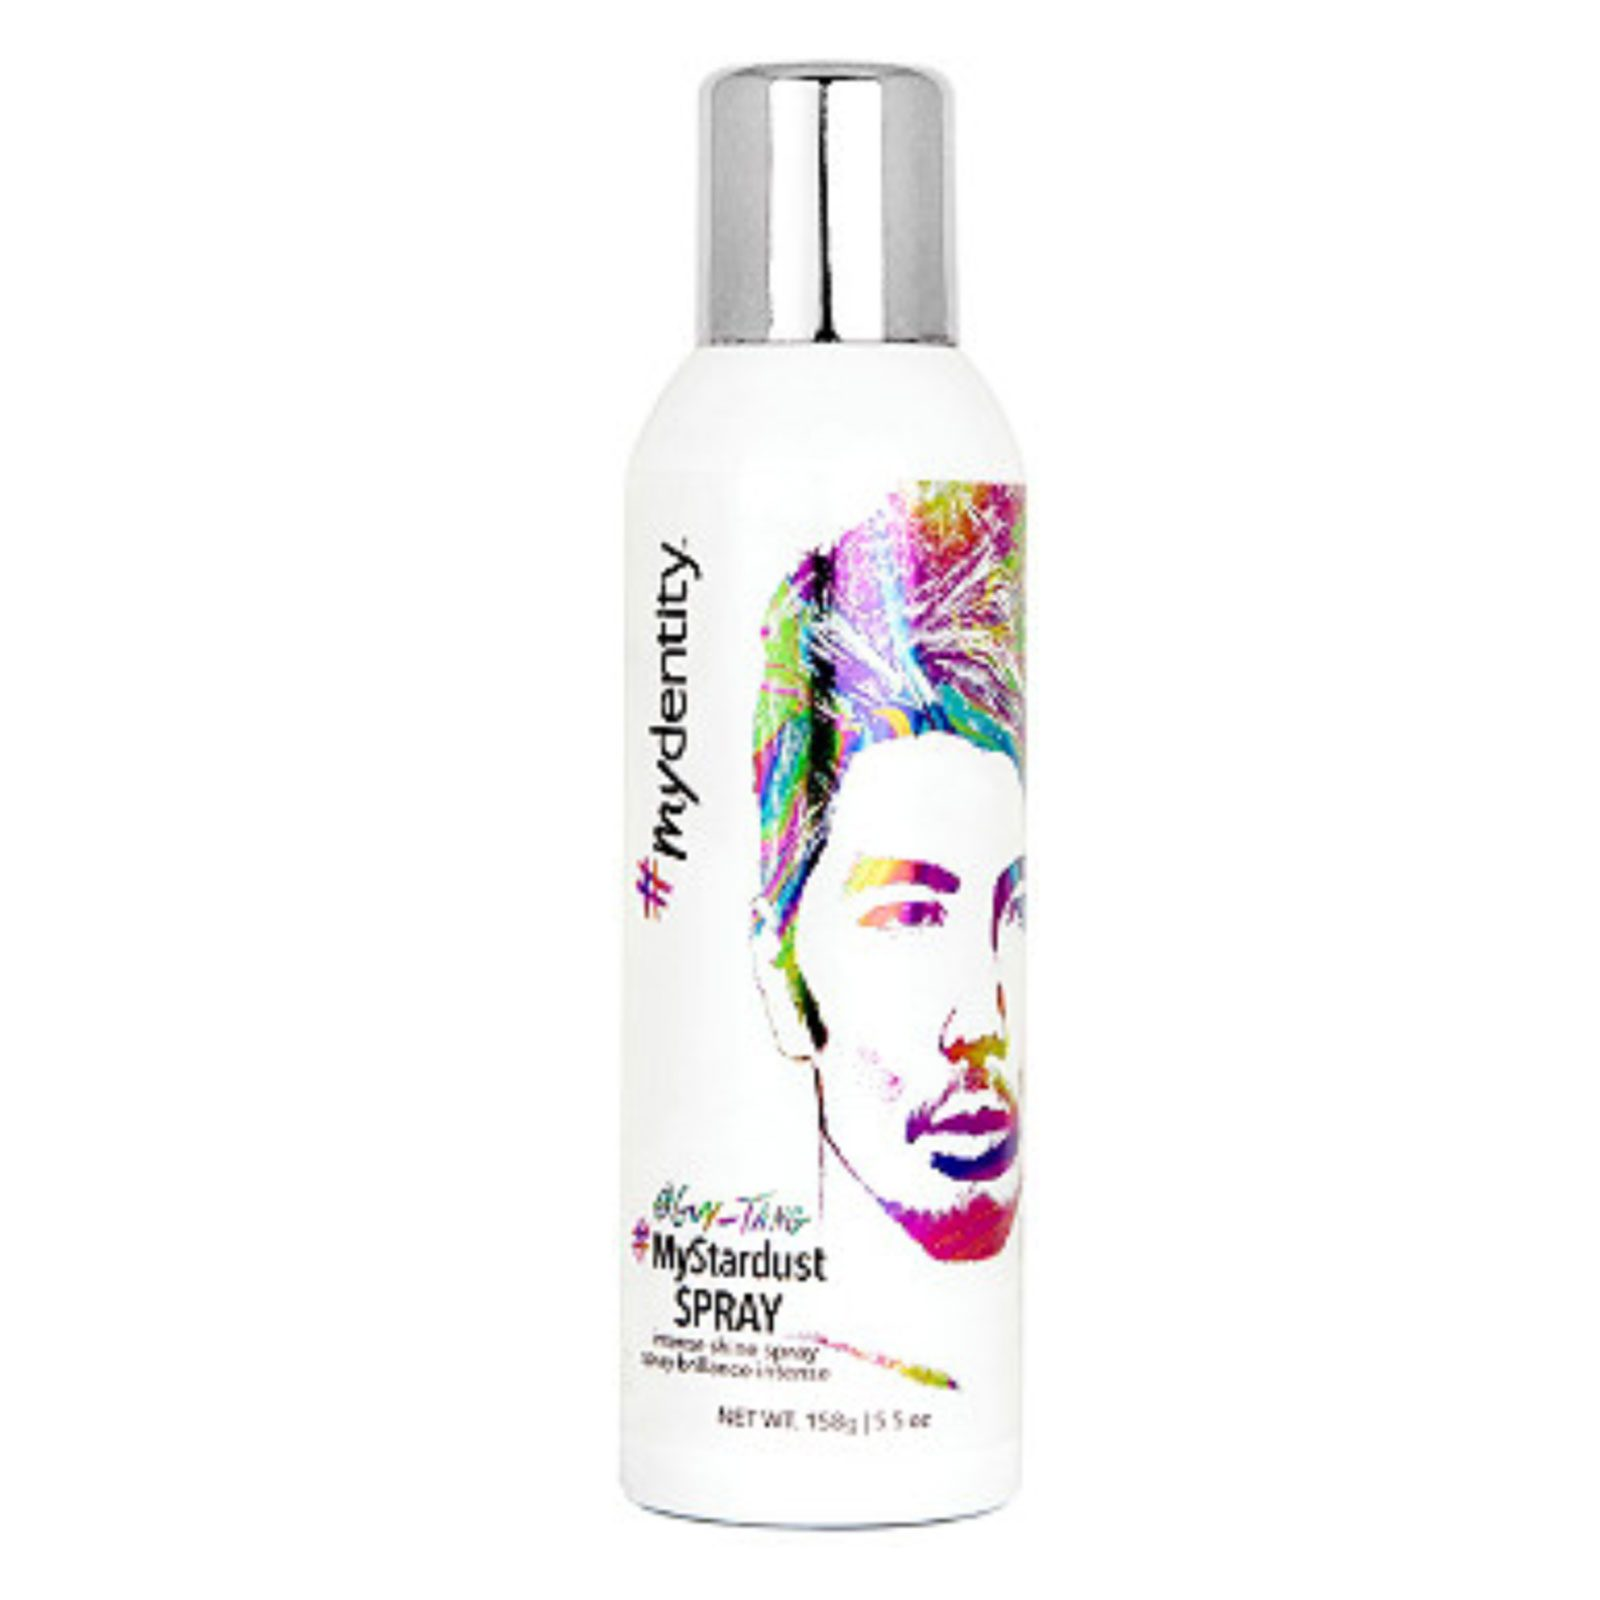 For the friend with great hair: Mydentity MyStardust Intense Shine Spray